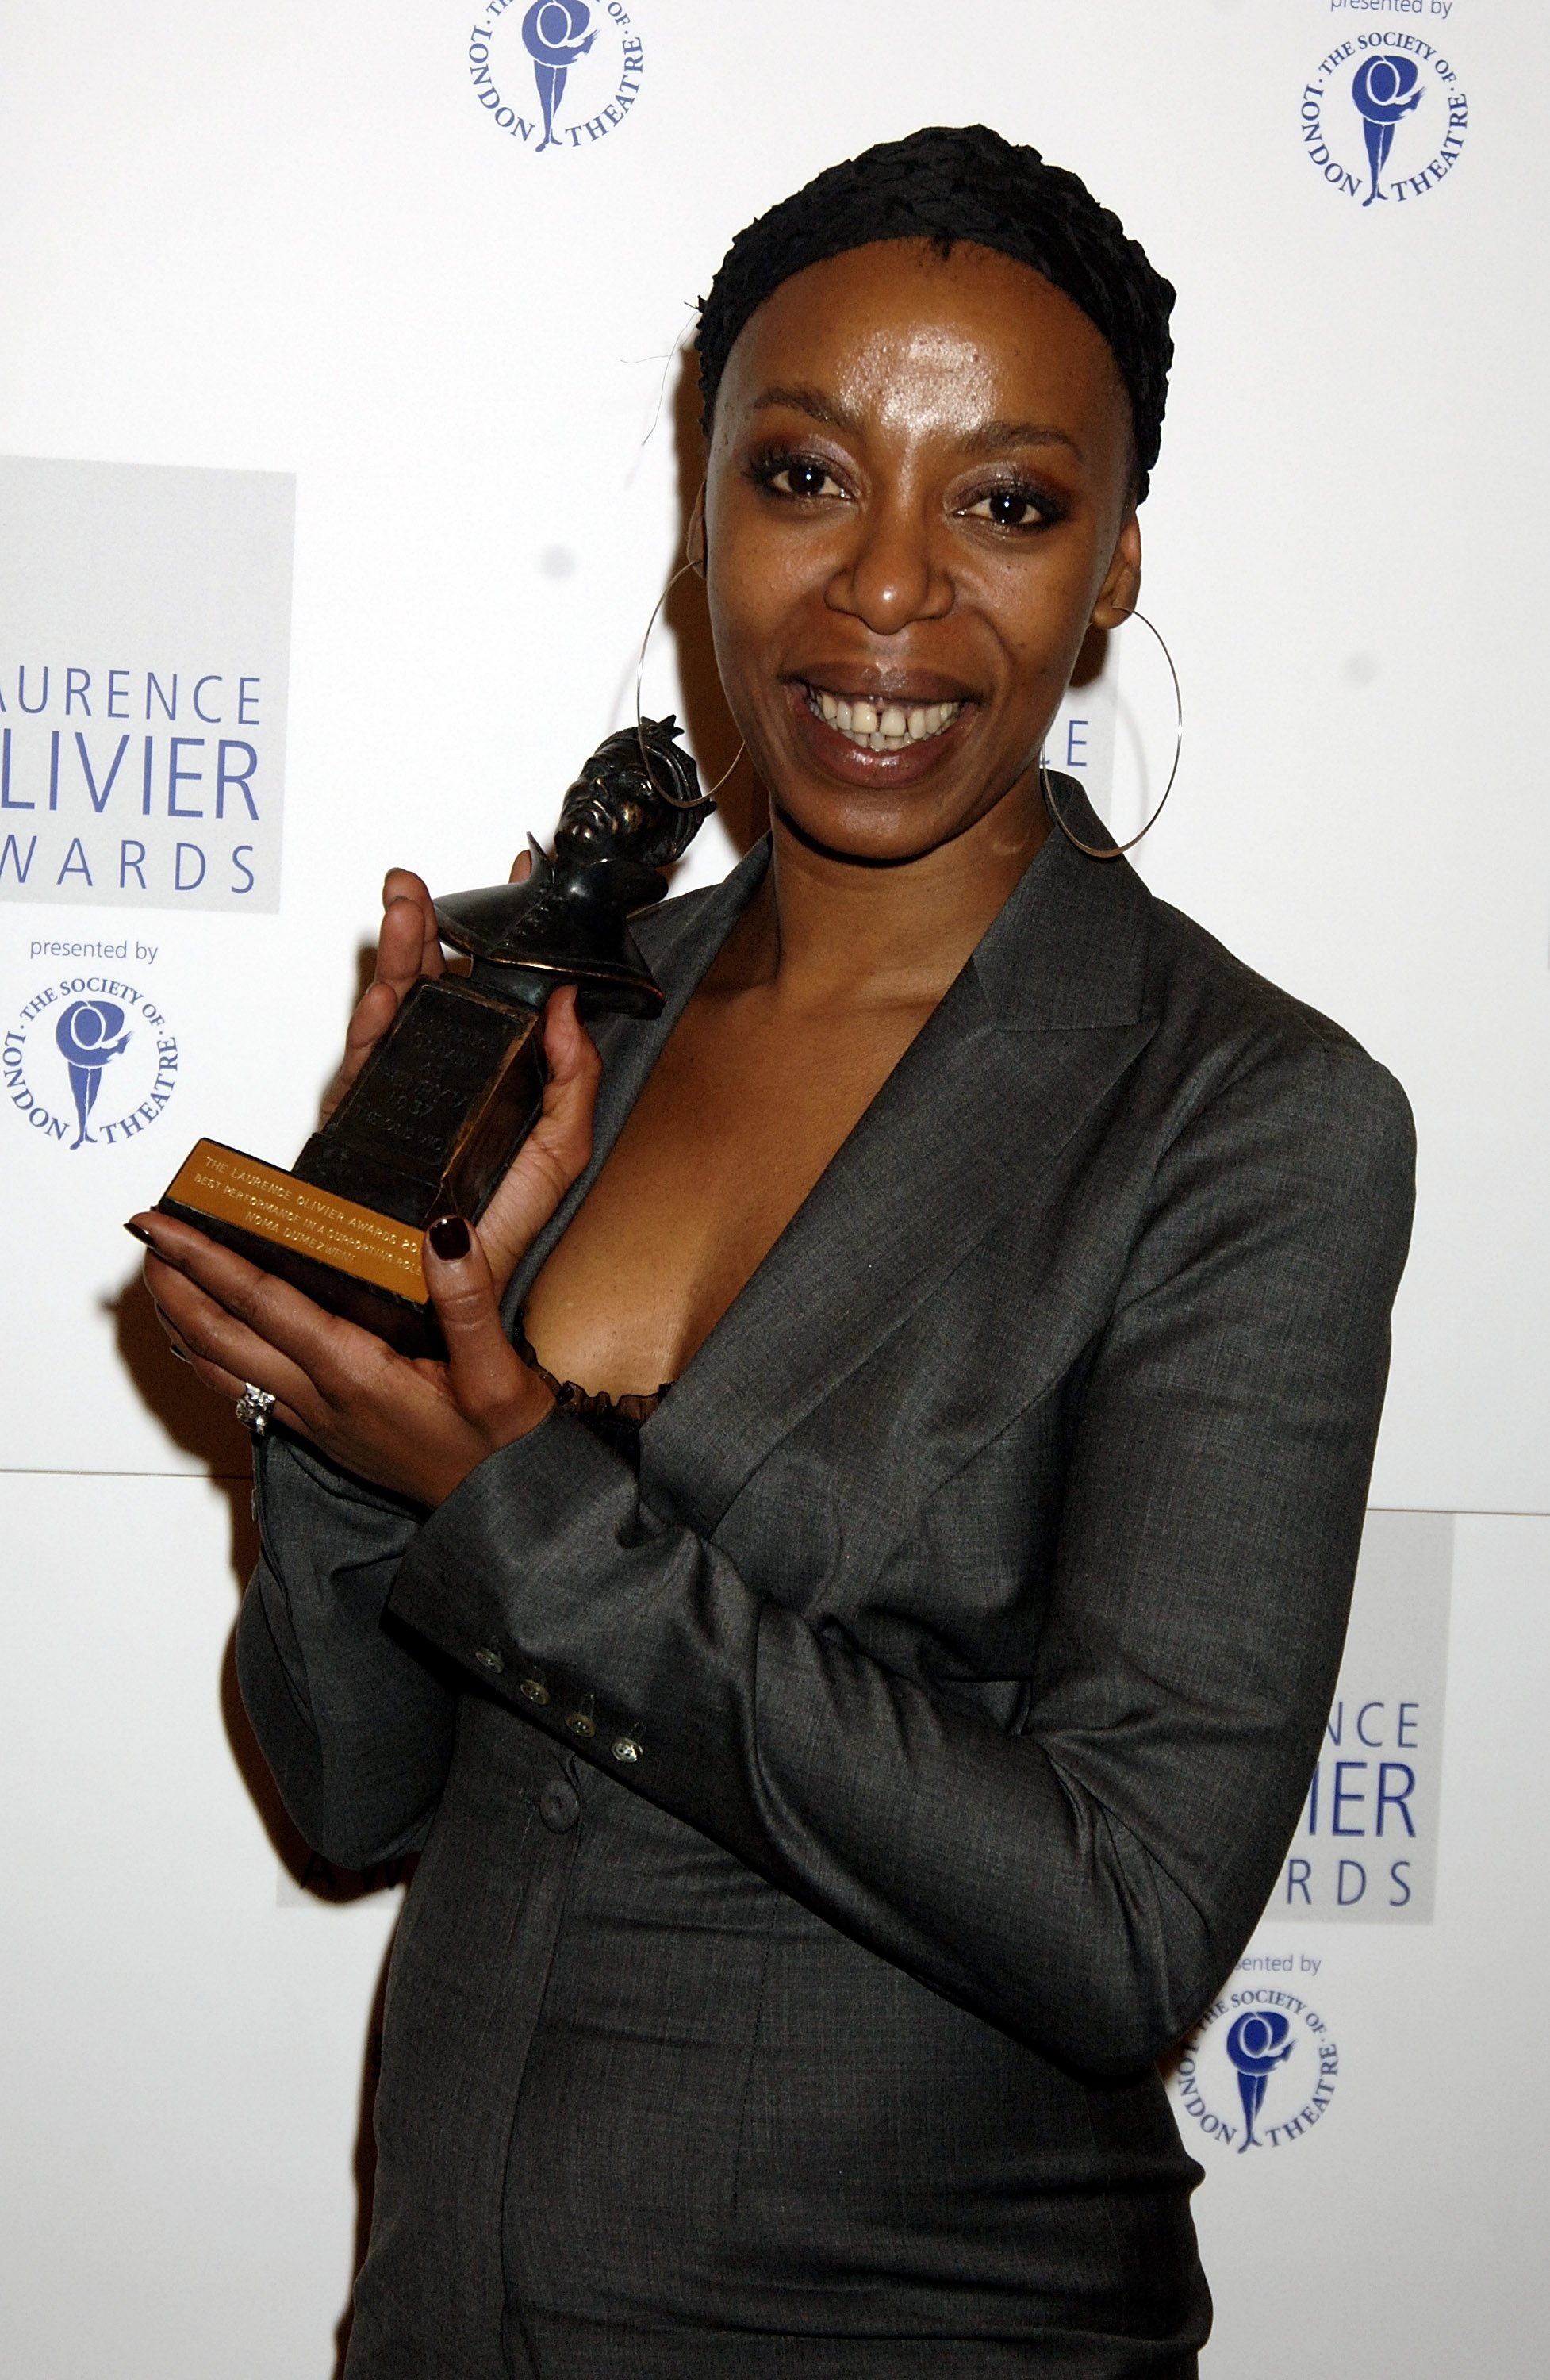 Noma Dumezweni poses with the award for Best Performance in a Supporting Role for A Raisin in the Sun at the Laurence Olivier Awards in London on Feb. 26, 2006